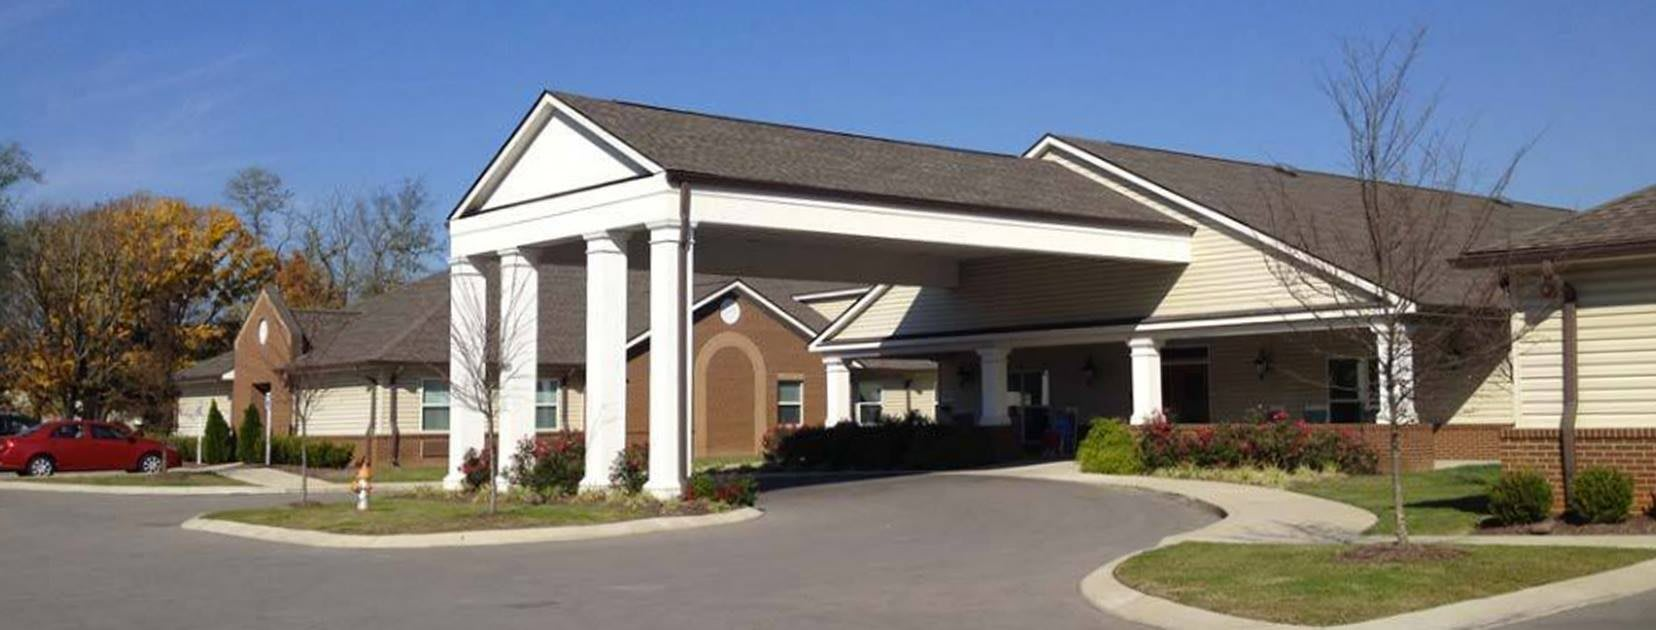 Photo 1 of Grace Manor Assisted Living Community